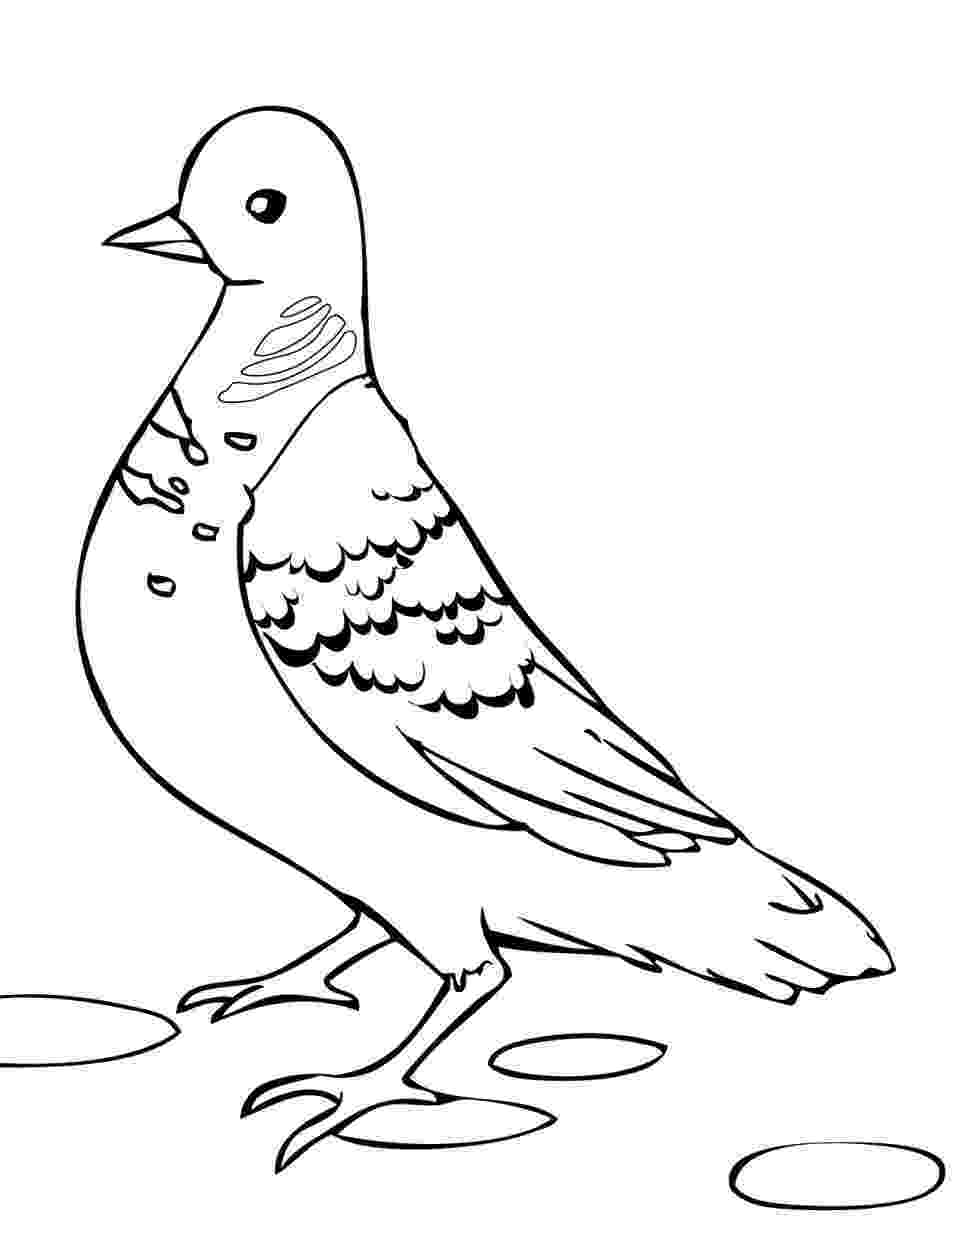 doves coloring pages world peace day online coloring pages page 1 coloring doves pages